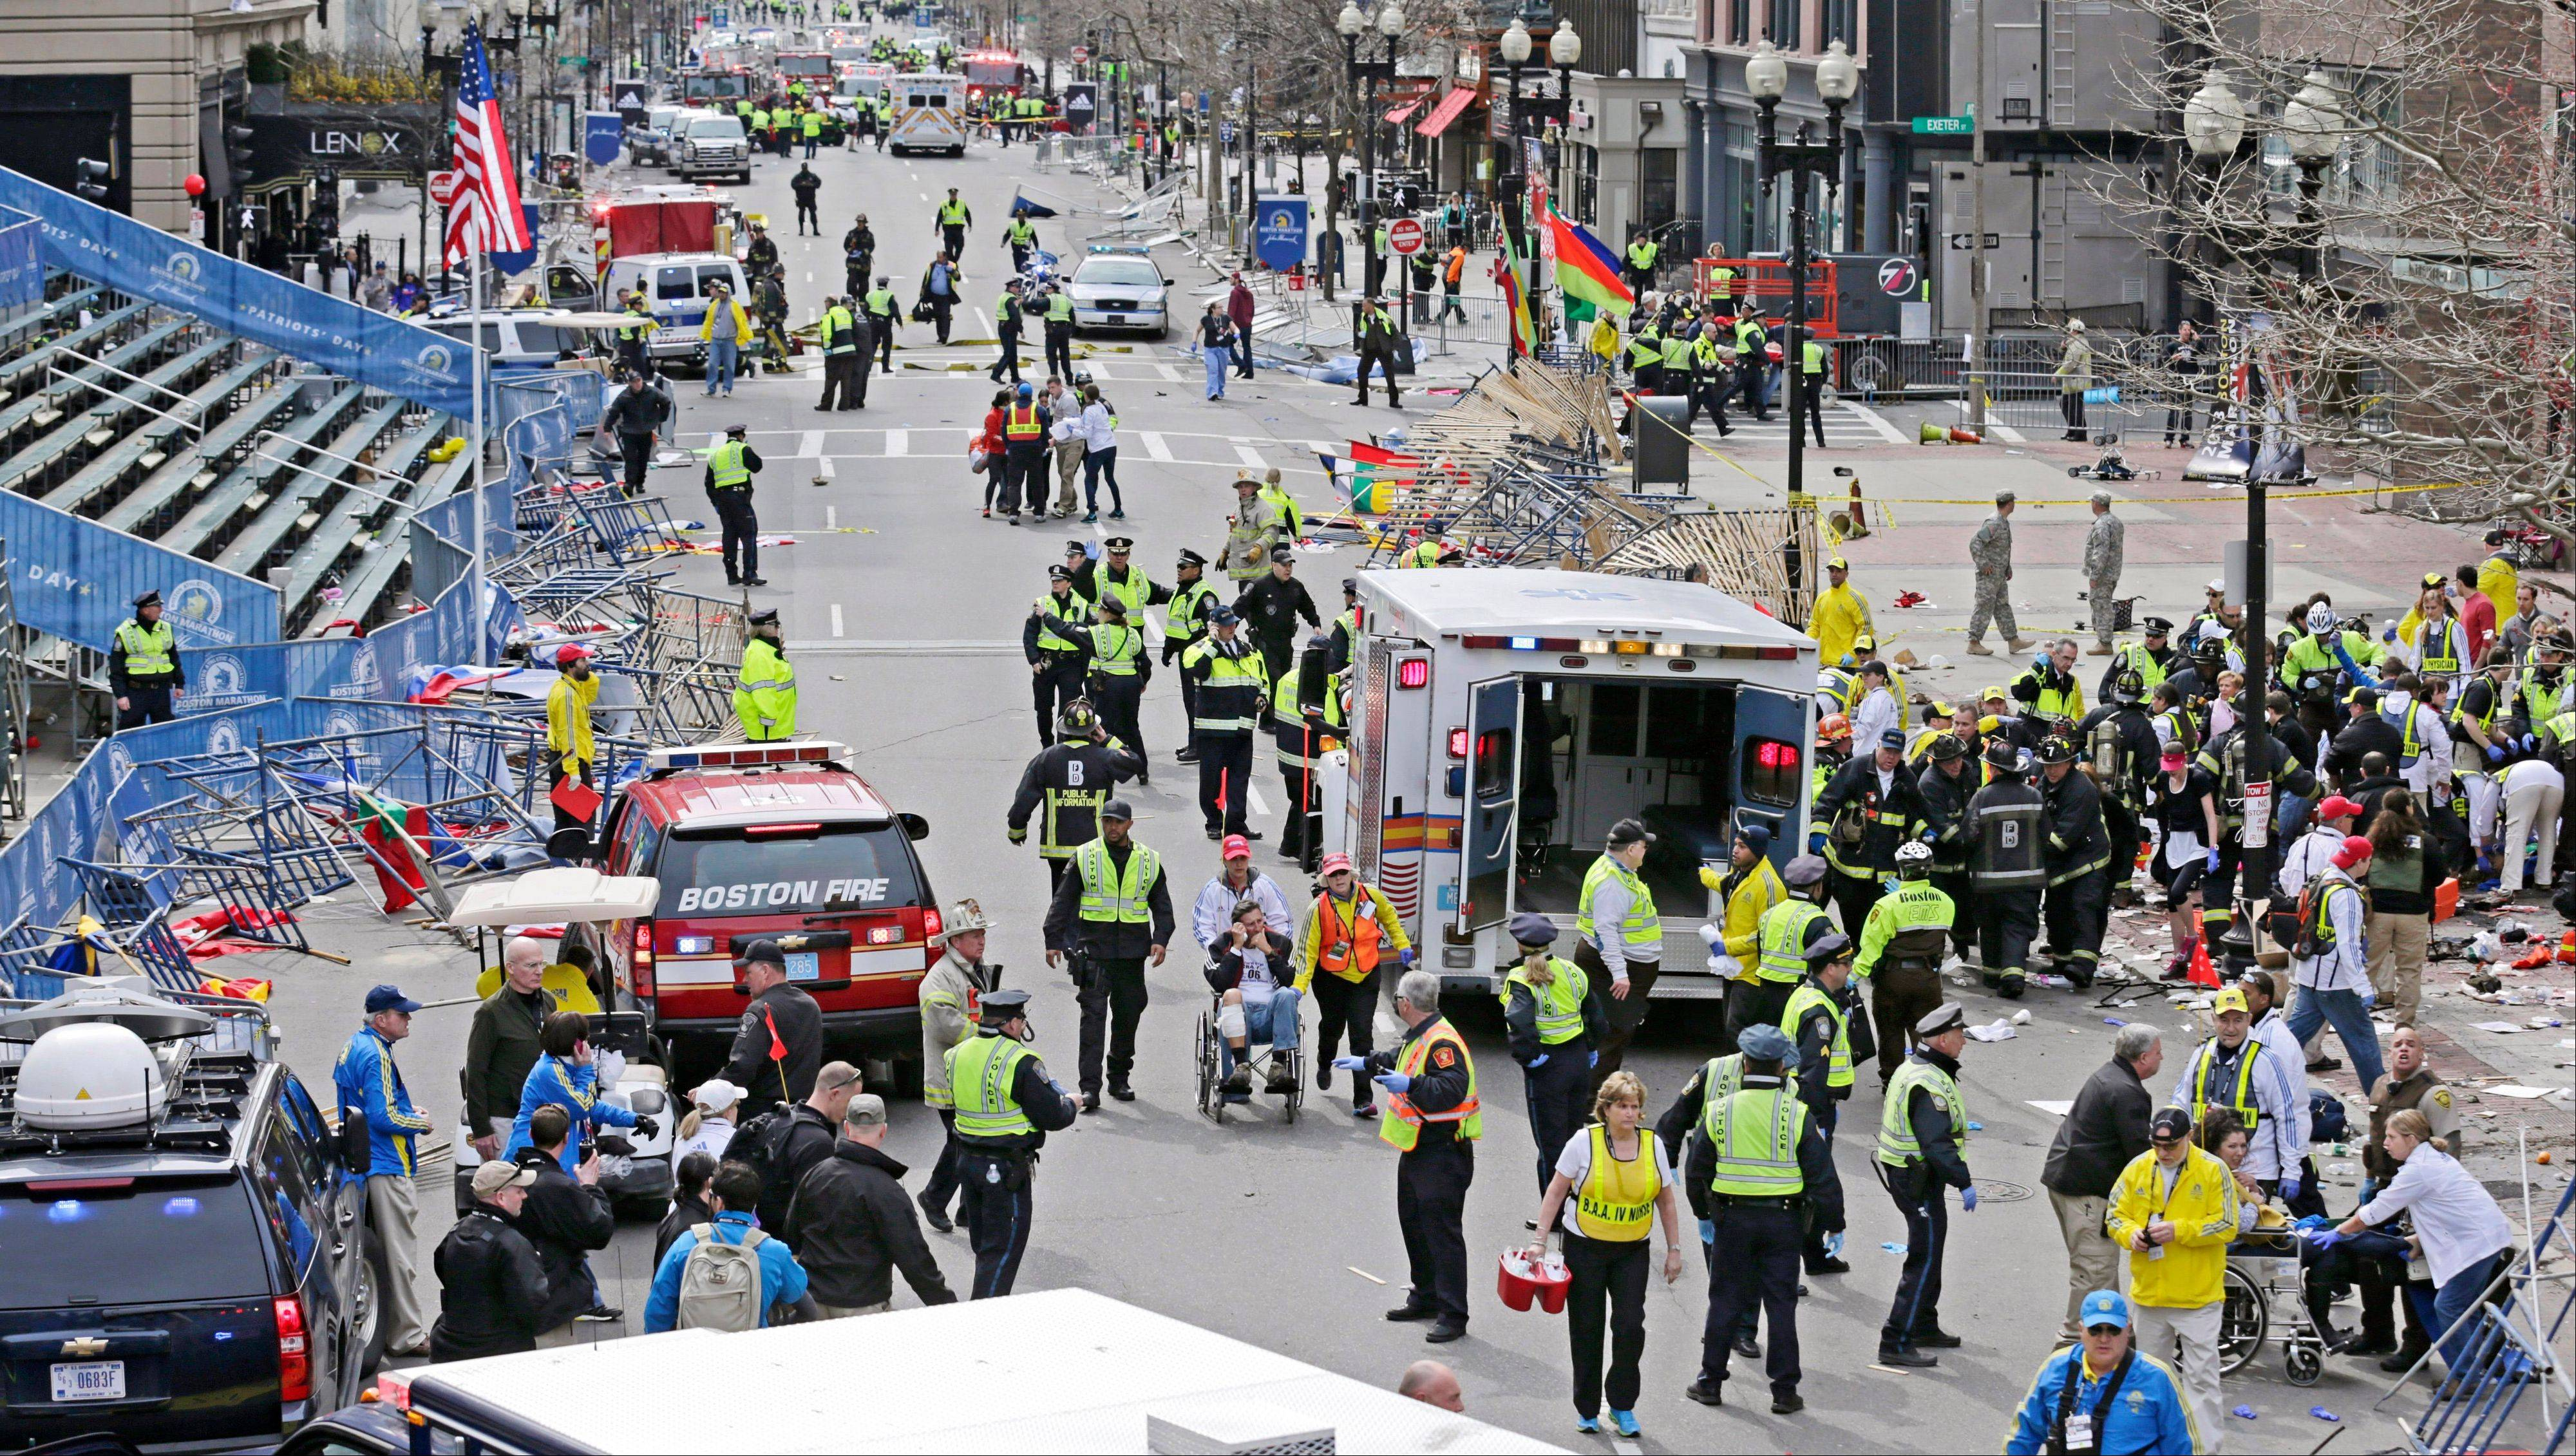 Medical workers aid injured people at the finish line of the 2013 Boston Marathon following explosions in Boston, Monday, April 15, 2013. Two explosions shattered the euphoria of the Boston Marathon finish line on Monday, sending authorities out on the course to carry off the injured while the stragglers were rerouted away from the smoking site of the blasts.